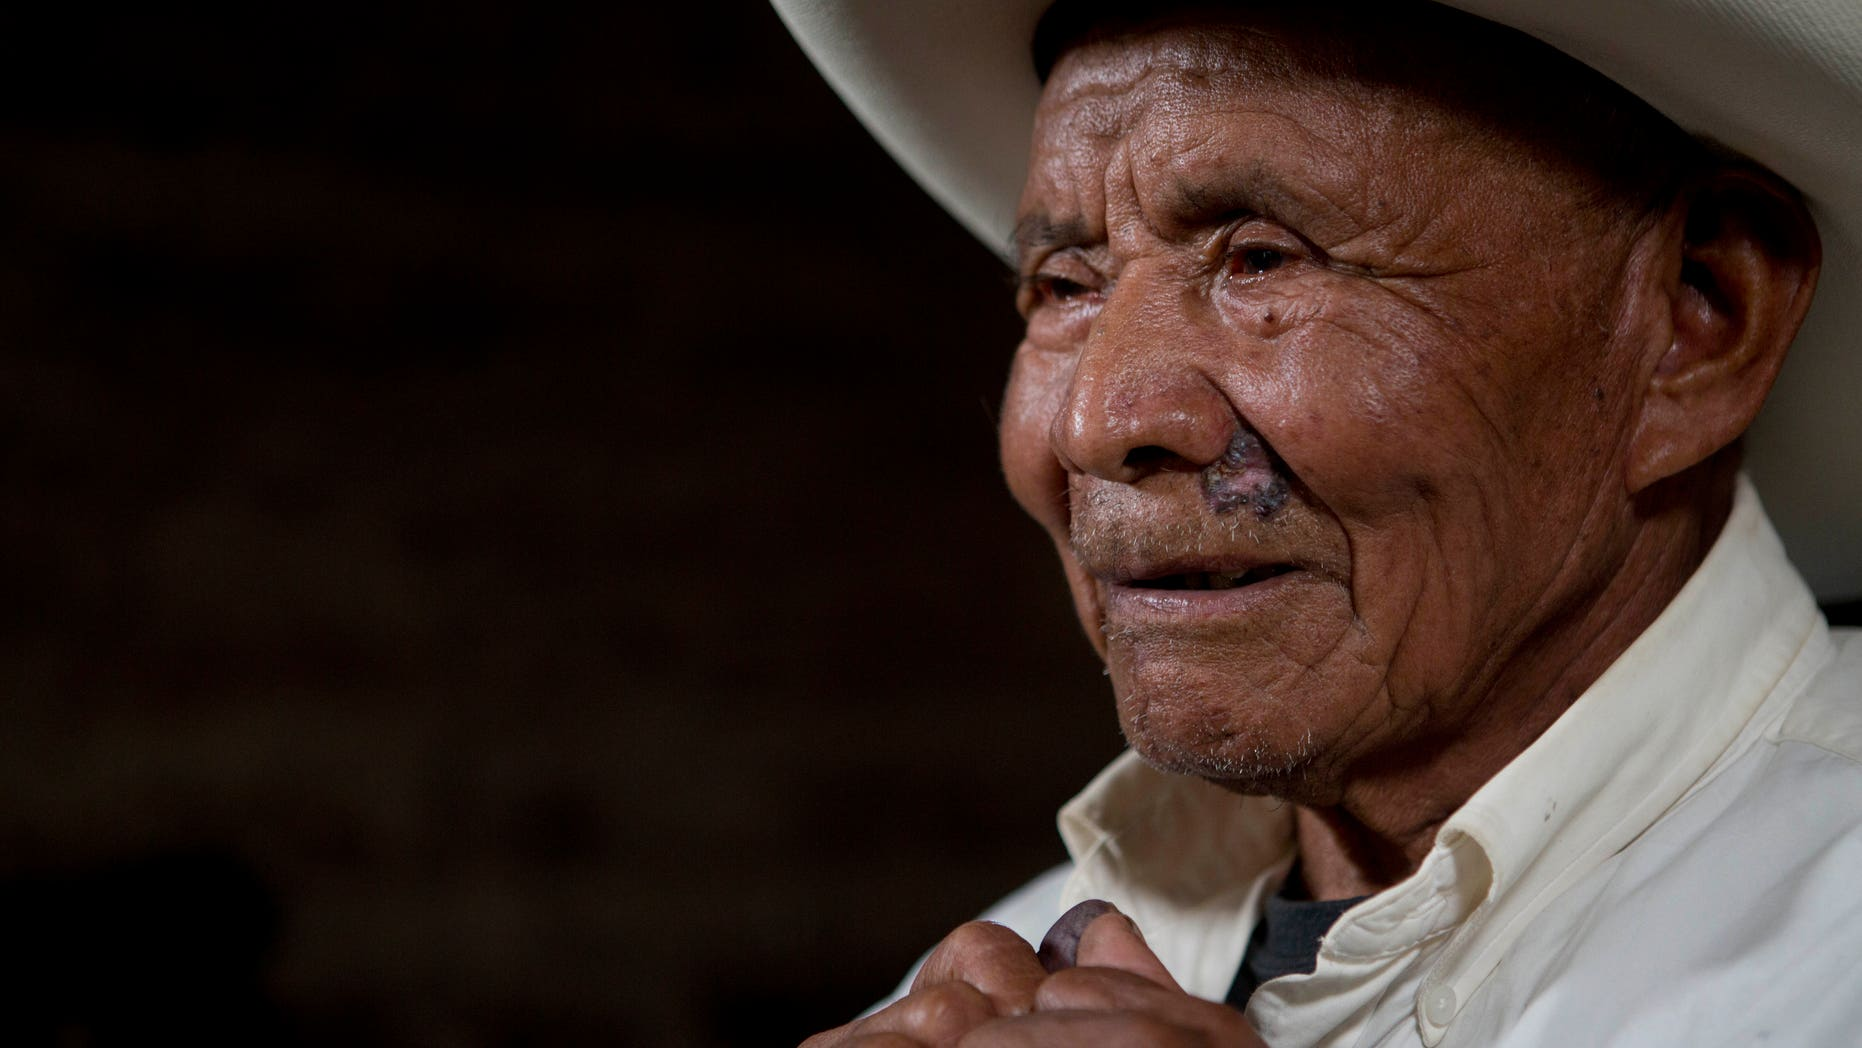 Fernando Osorio, a survivor of the Rio Negro massacre, during an interview to the Guatemalan Forensic Anthropology Foundation.